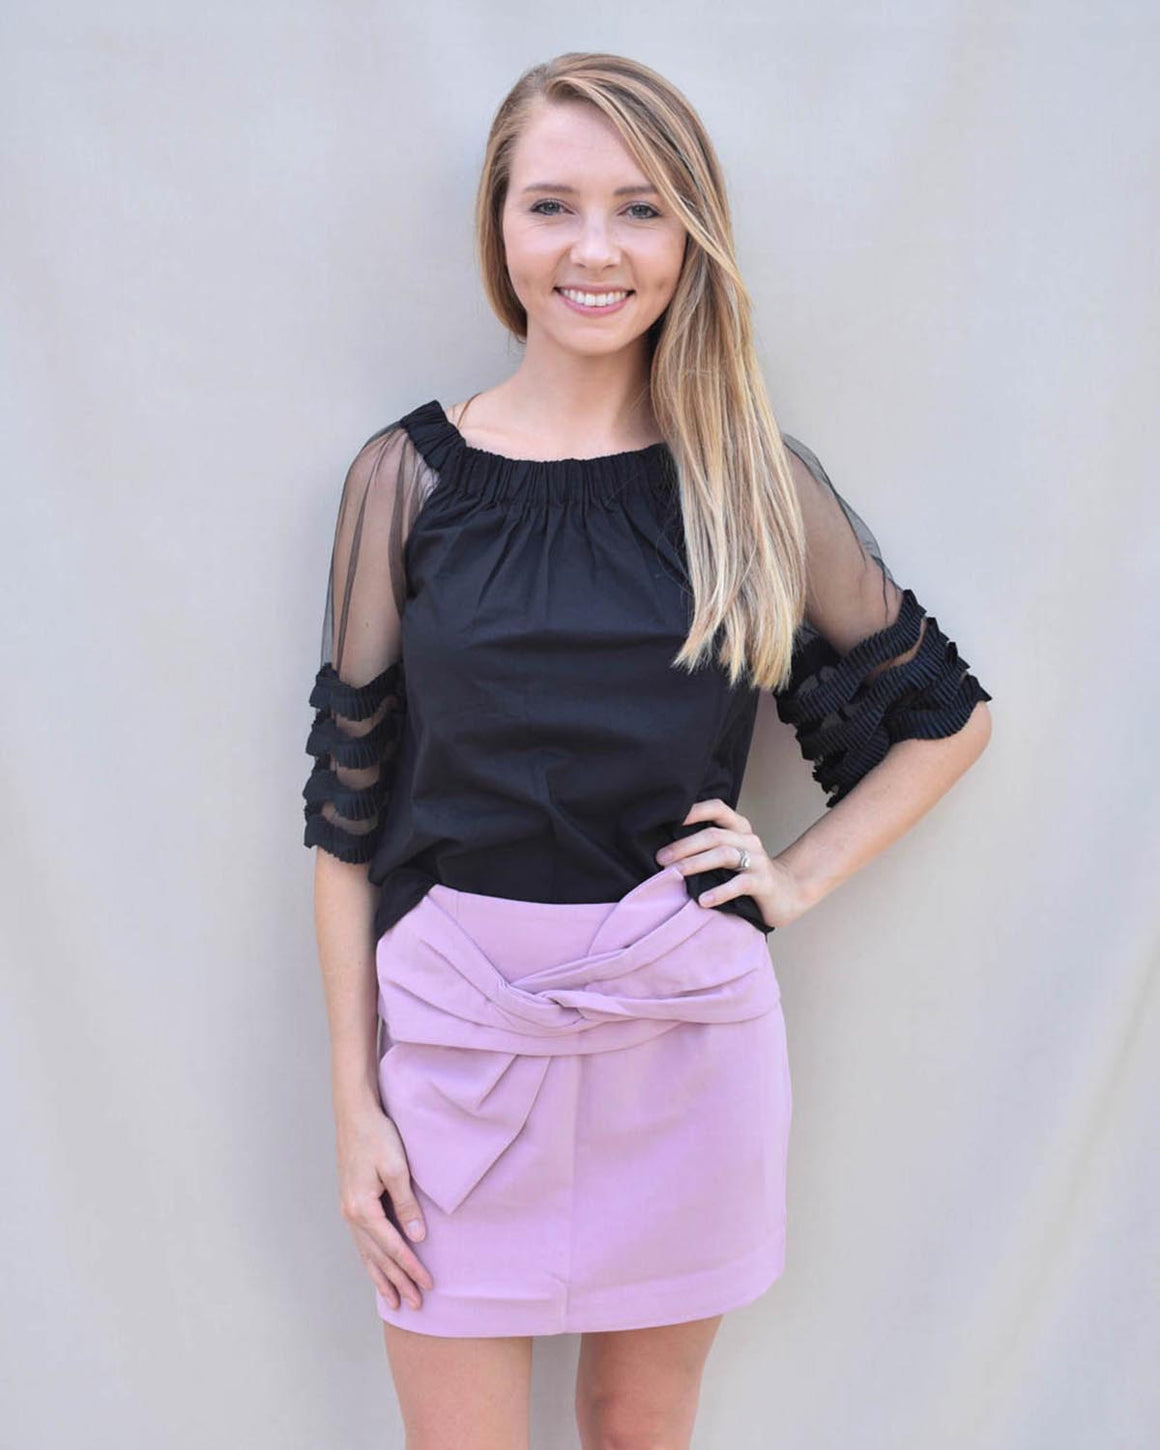 Chelsea Bow Mini Skirt  | Cayman & Co. Boutique